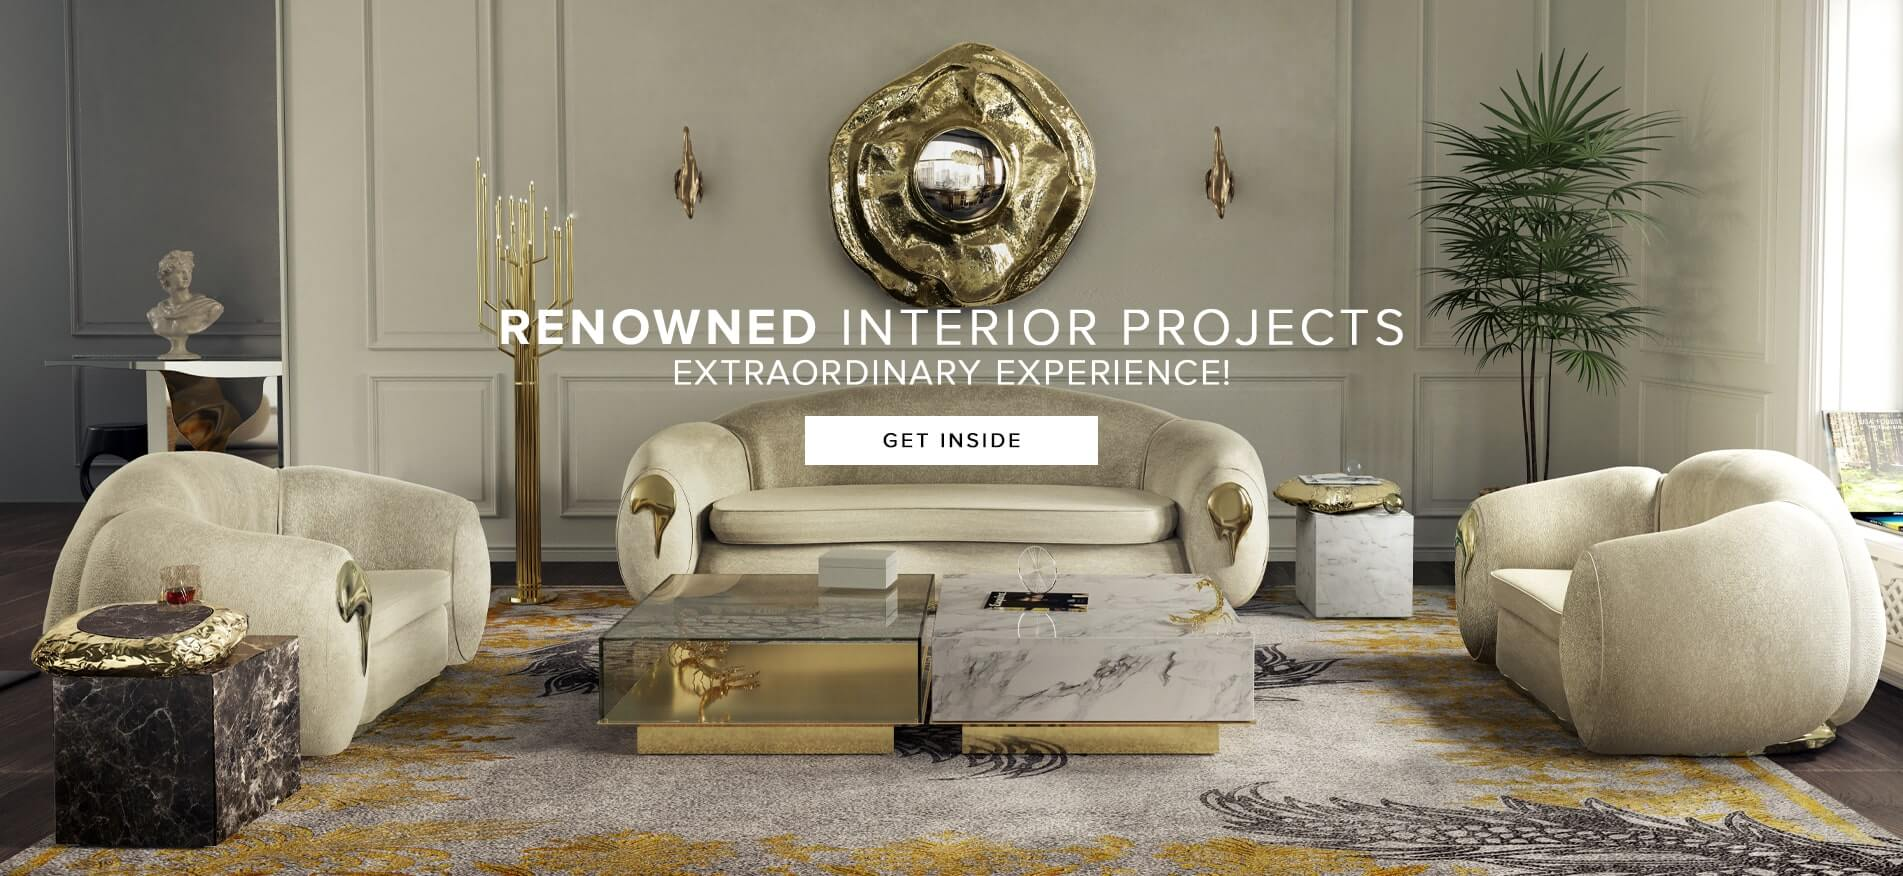 Renowned Project Interiors - Extraordinary Experience - Get Inside